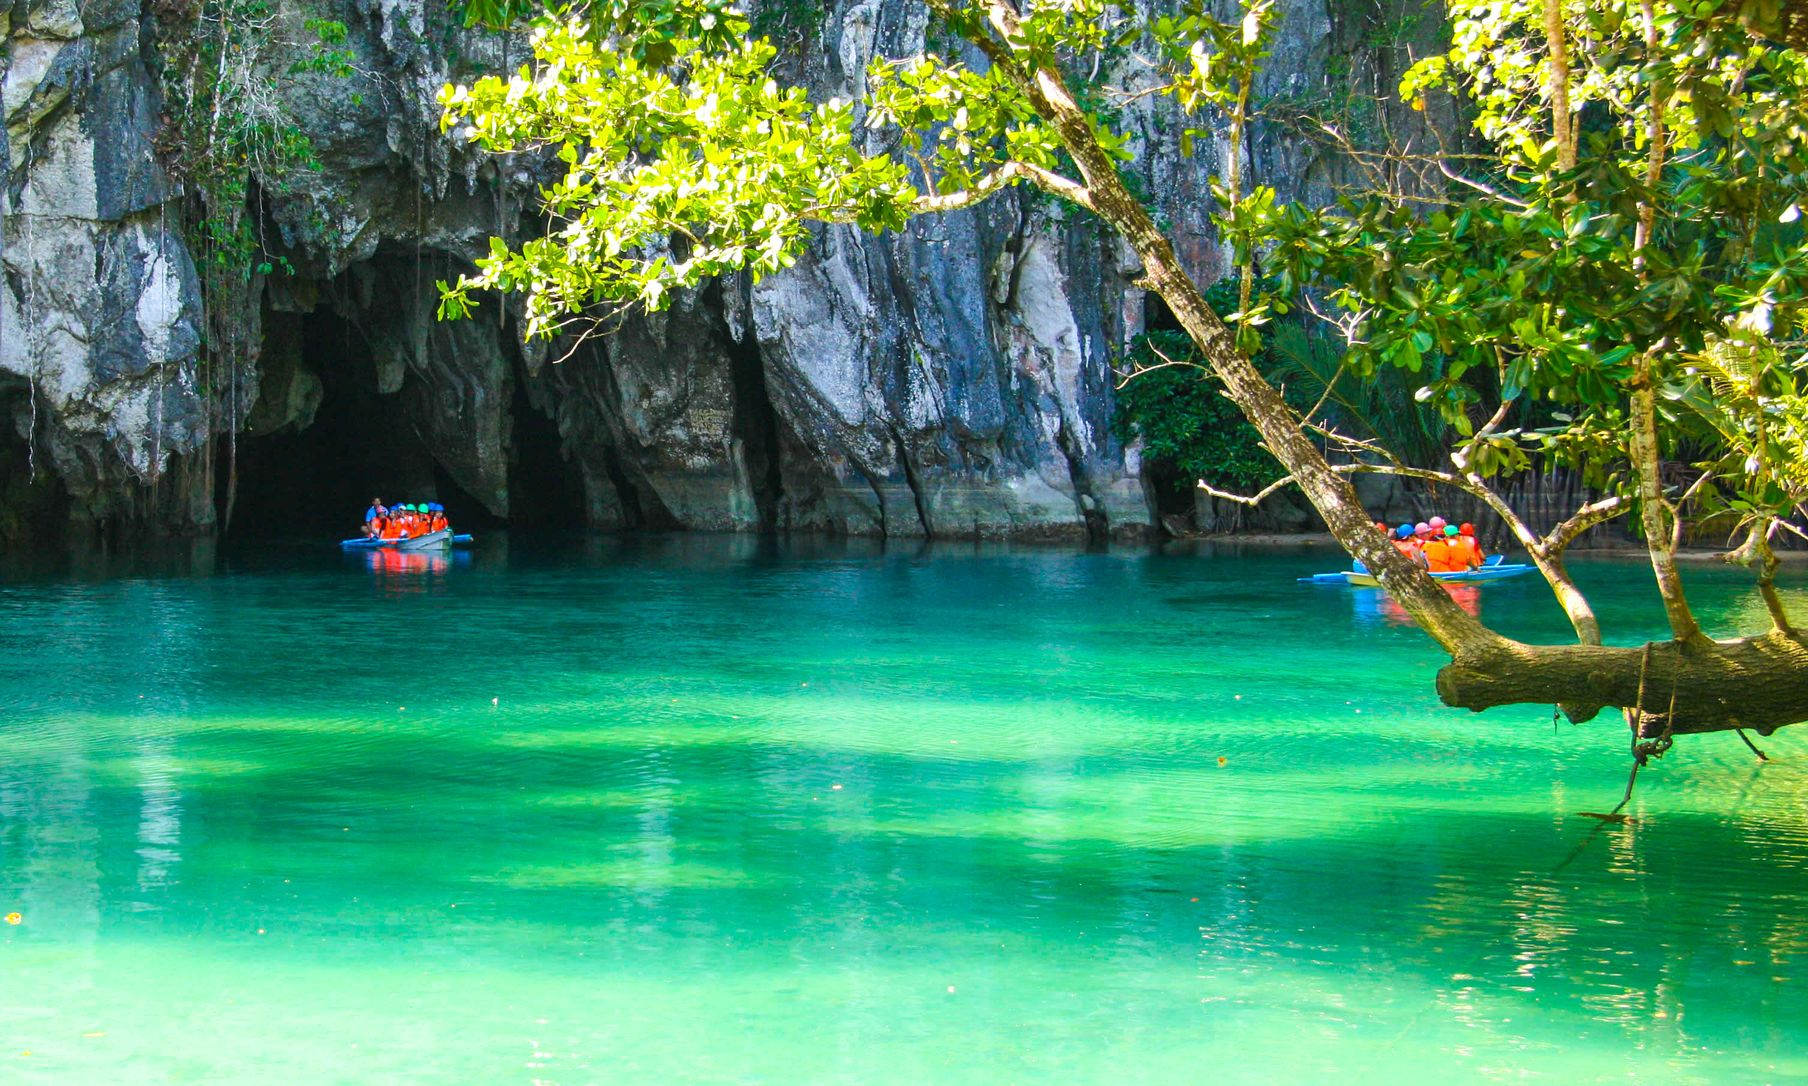 A boat laden with people sails through turquoise- and jade-hued waters and into a cave opening on a limestone cliff overhung with vegetation